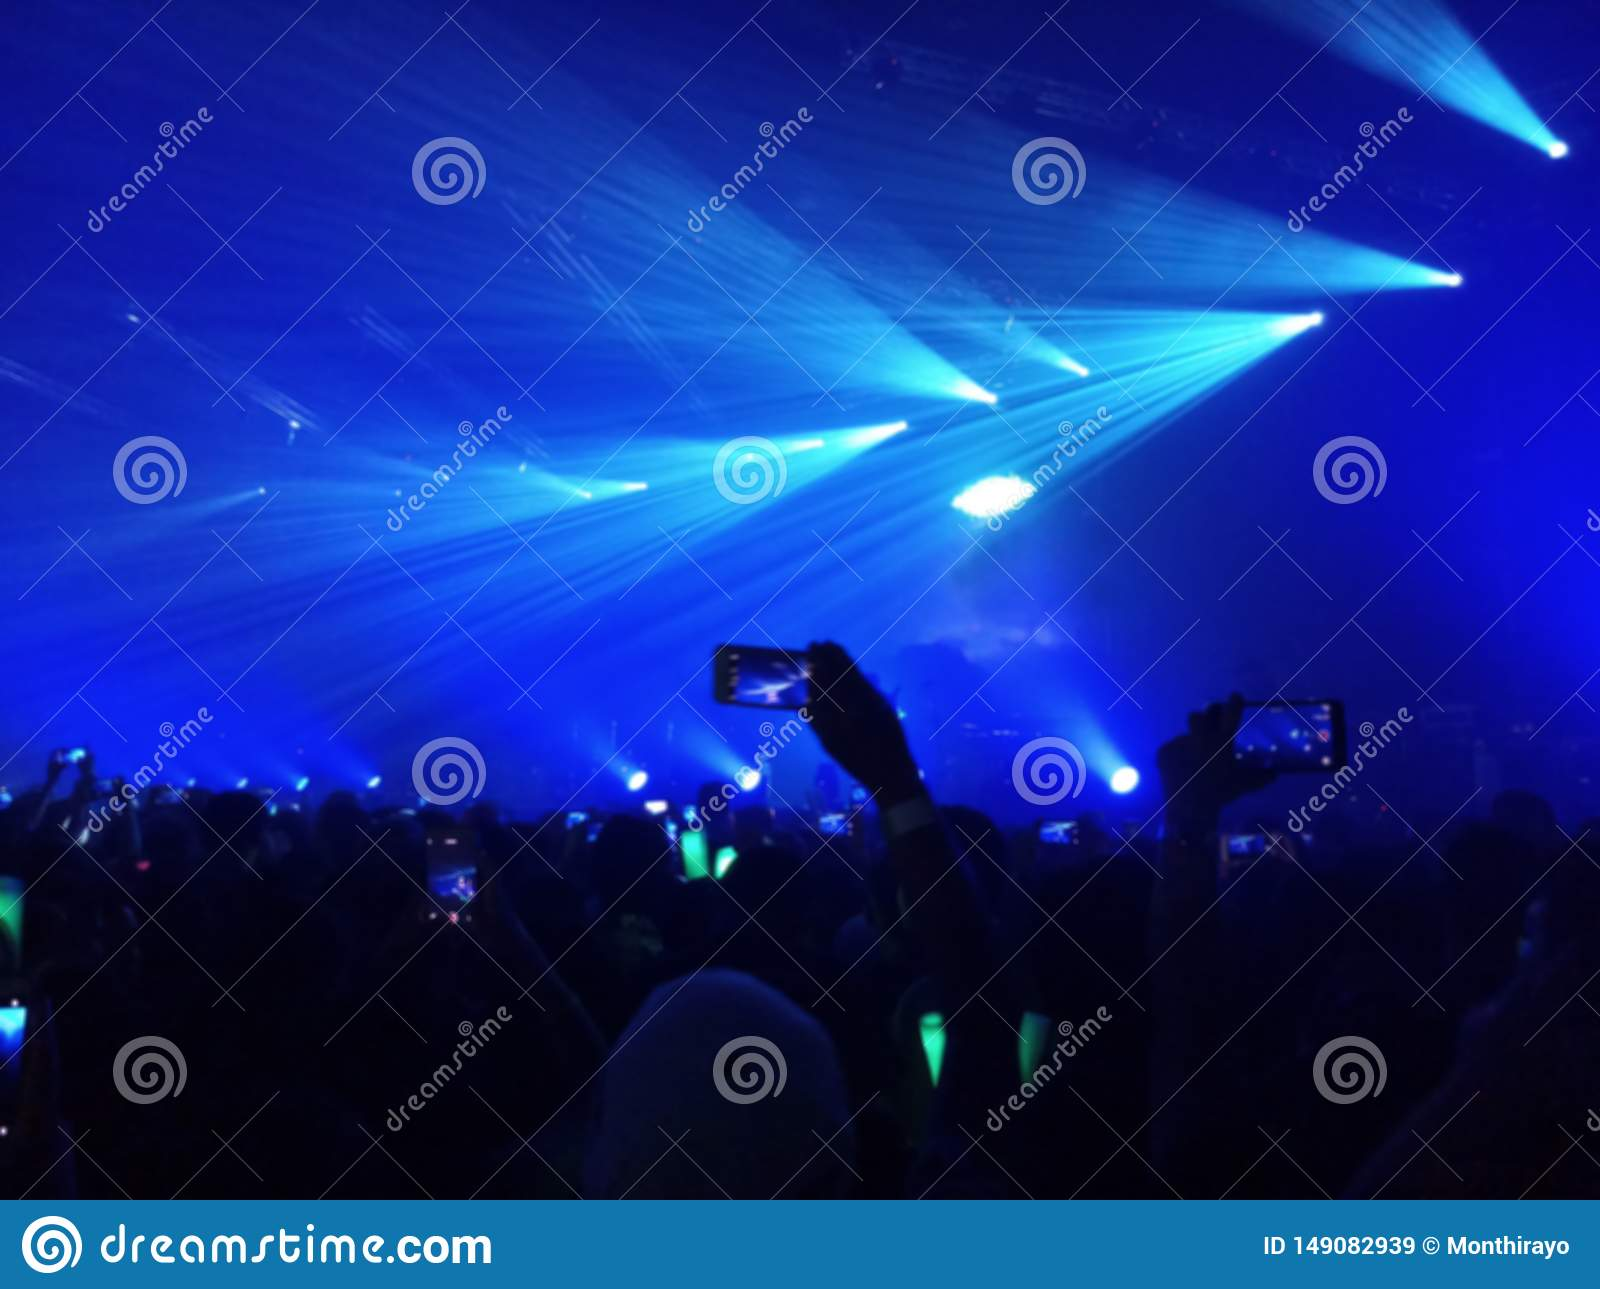 Blurred photo of people using a smart phone to take a photo of music festival and lights streaming down, rock concert